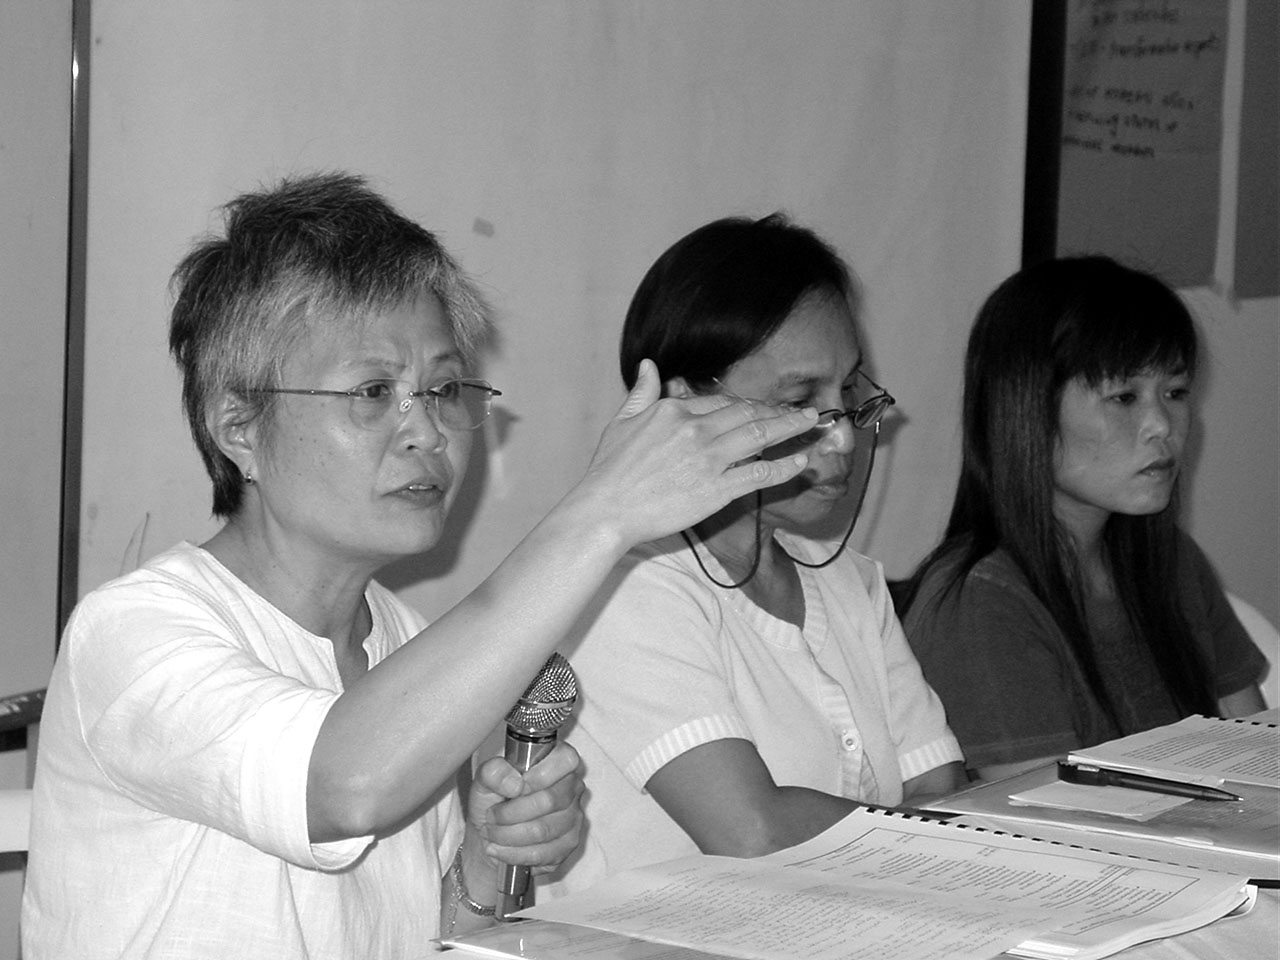 Leny Tolentino speaks of women's agency and empowerment during the 2007 Regional School on Marriage Migration in Asia held in November at Pagsanjan, Philippines.